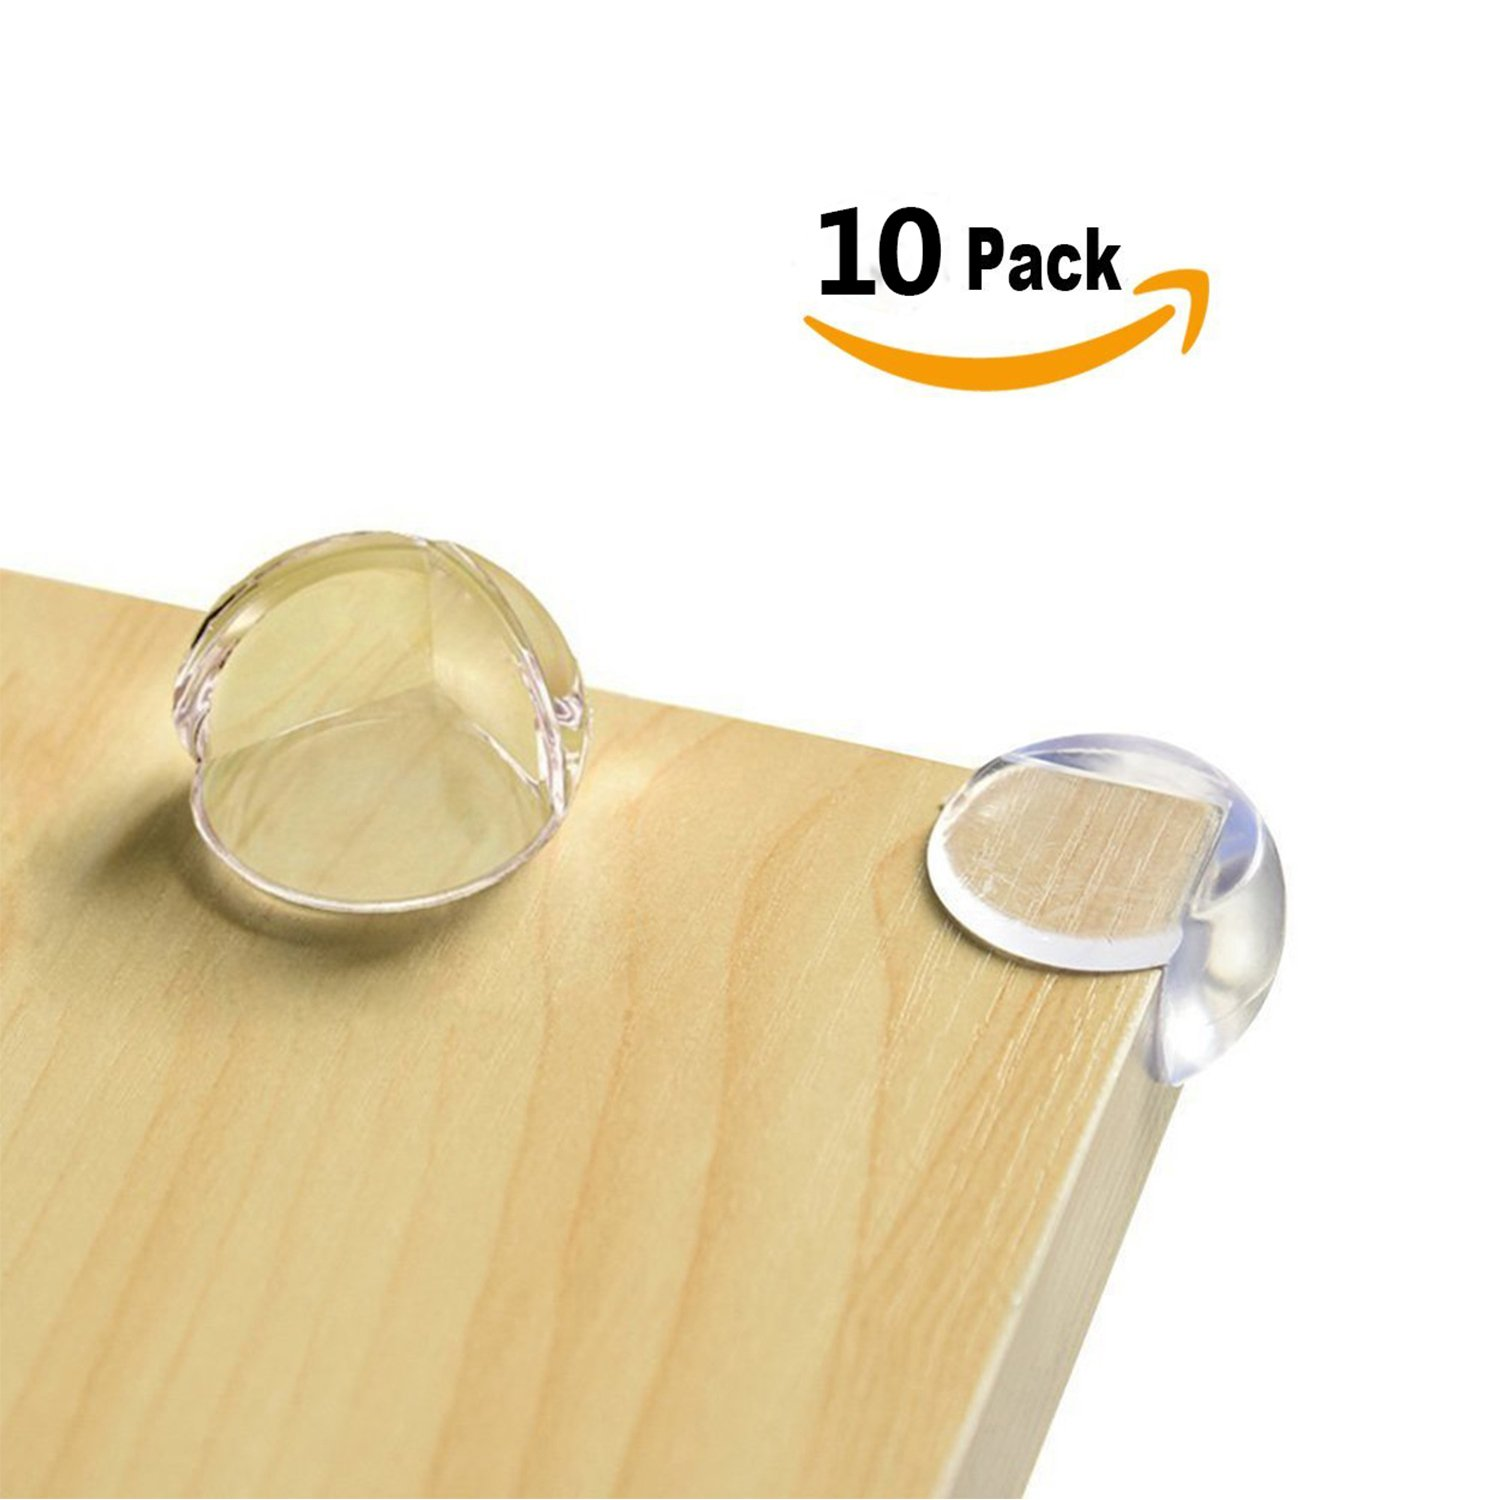 Baby Caring Clear Corner Protectors Child Proof Safety Corner Bumpers for Furniture Edge Help Protect Kids Against Bumps and Injuries 10-Pack Ball Shape Clear Table Corner Guards with Matte Finish Transparent with 3M Adhesive LPHUS